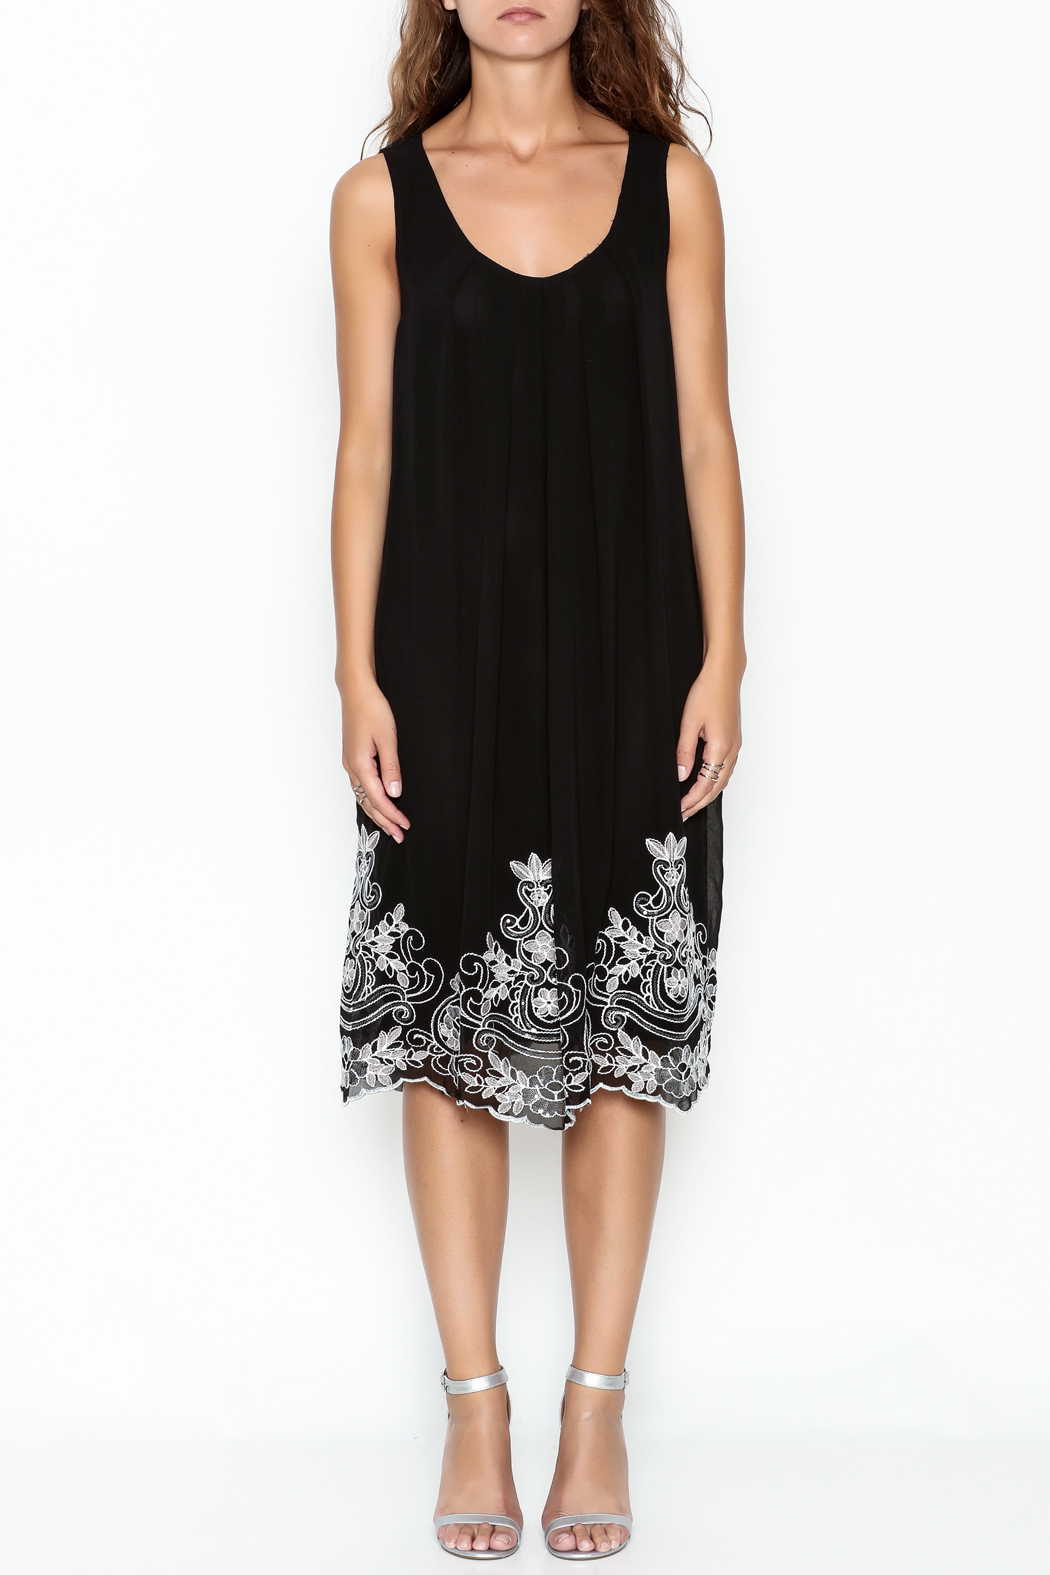 Monoreno Black Sequin Floral Dress - Front Full Image